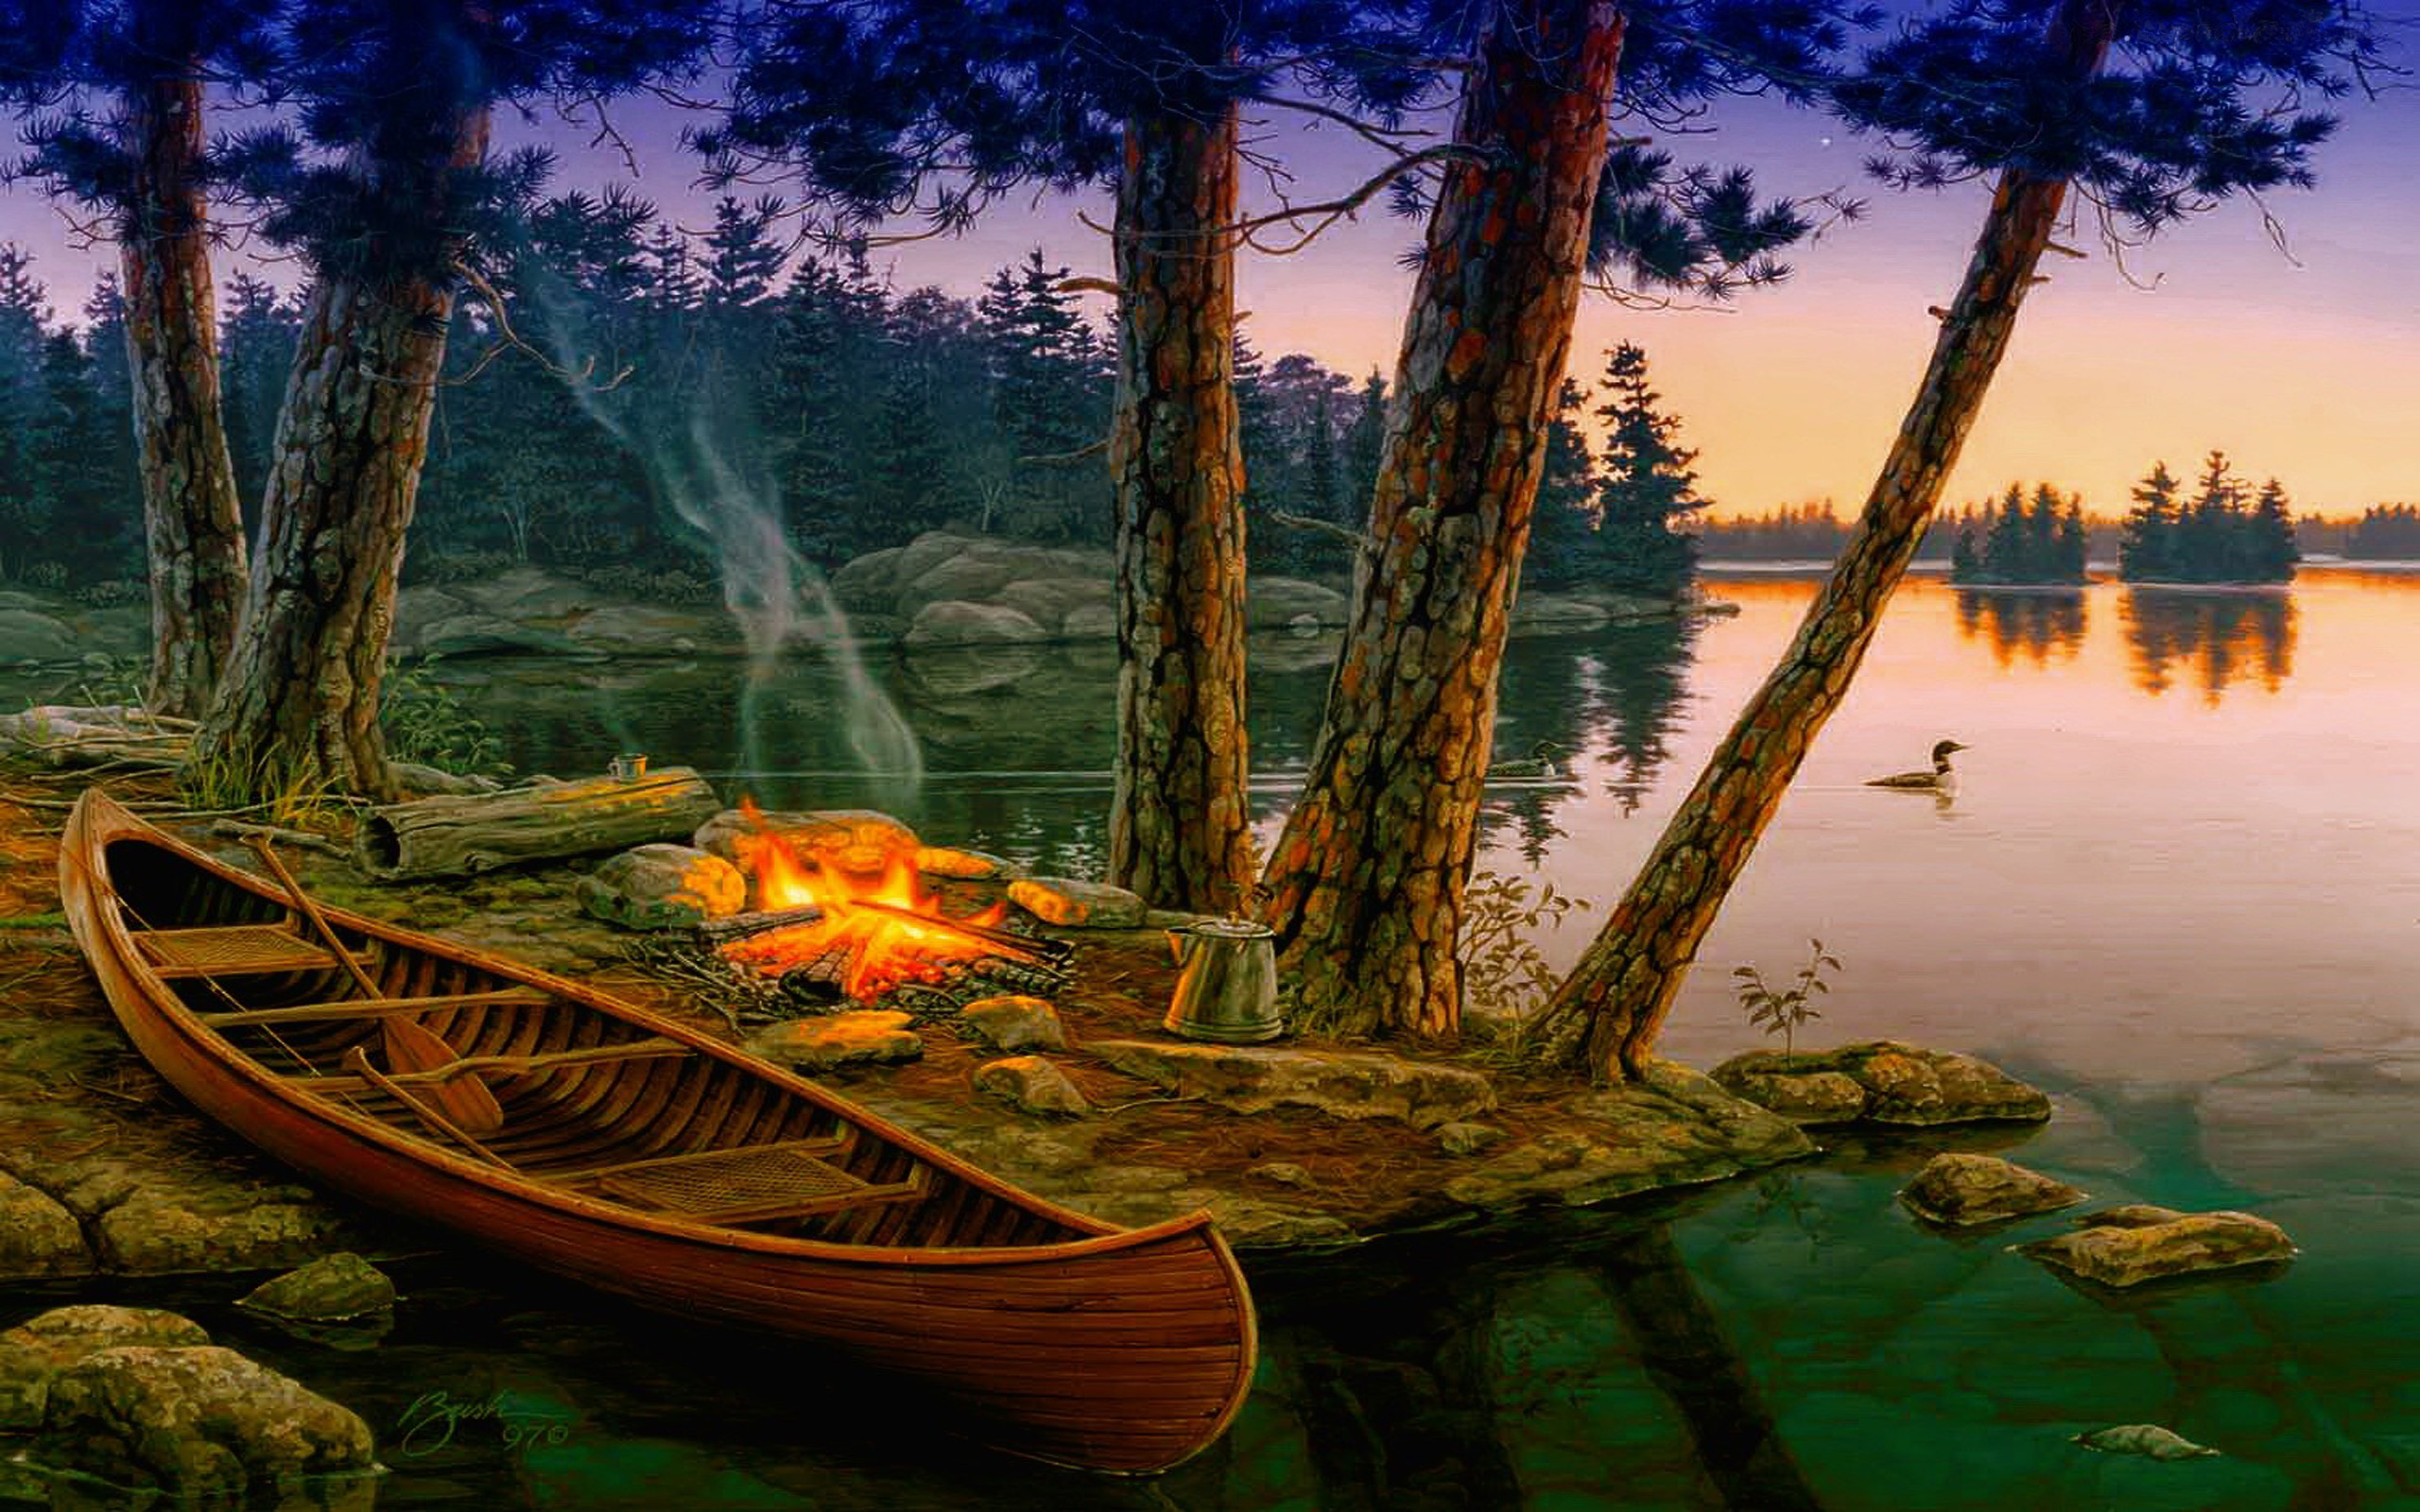 Rustic Fall Desktop Wallpaper Campfire Background Hd Pixelstalk Net